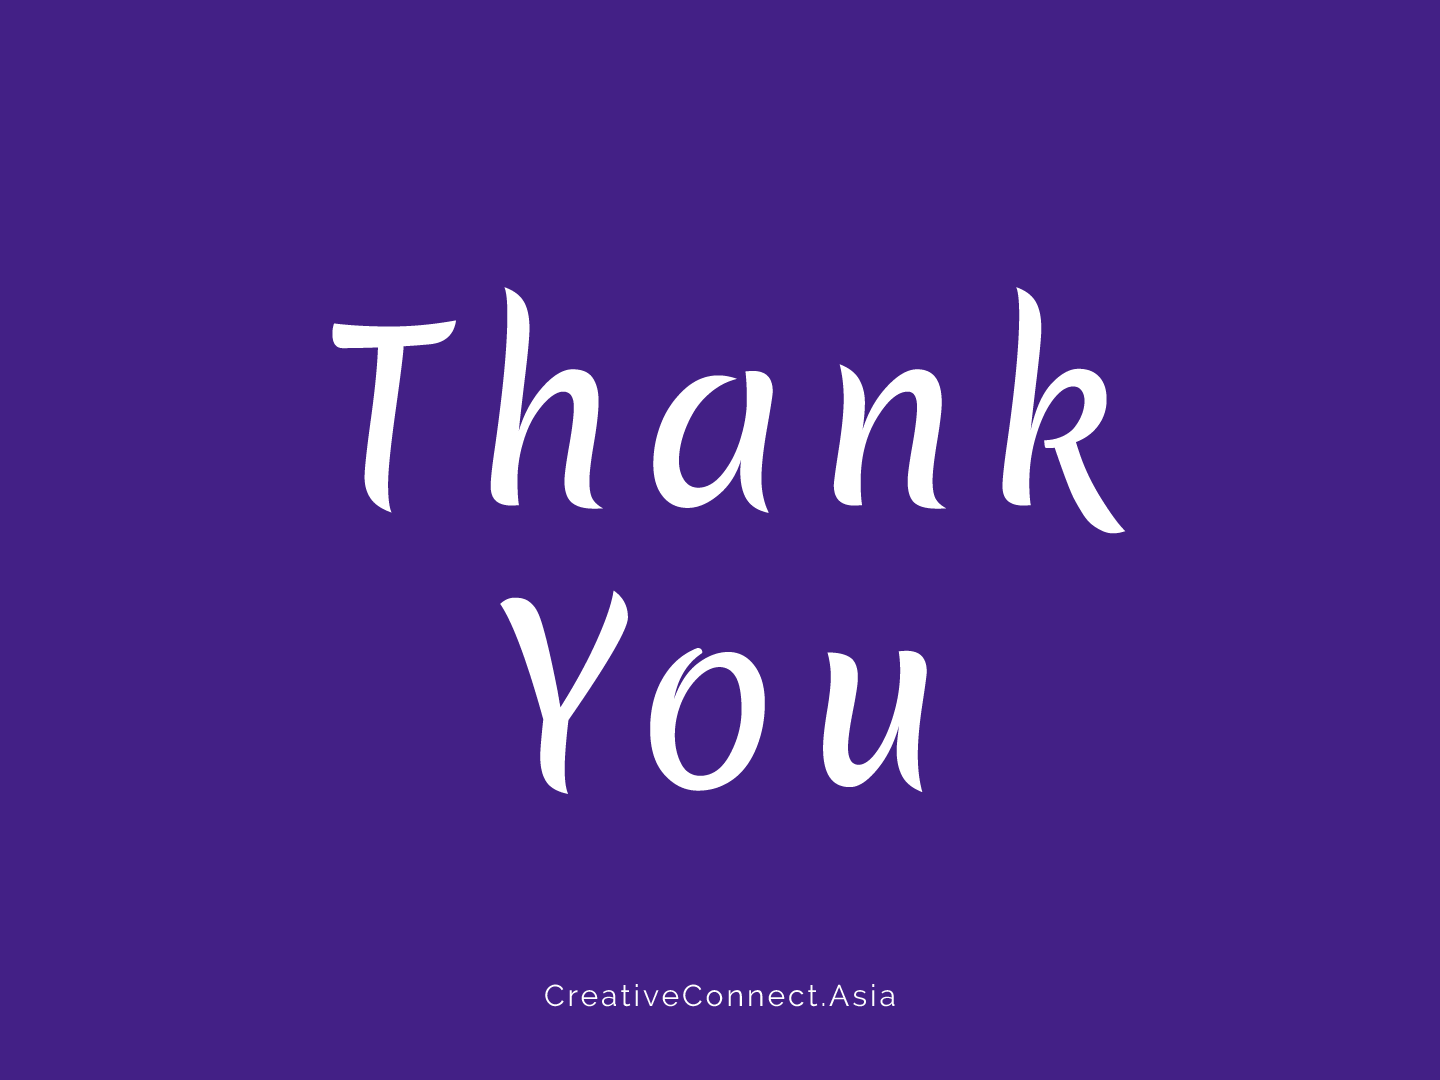 Daily UI - #77 lettering typography you thank you thank designer user experience user inteface app website animation logo vector creative connect illustration branding web design dailyui creative